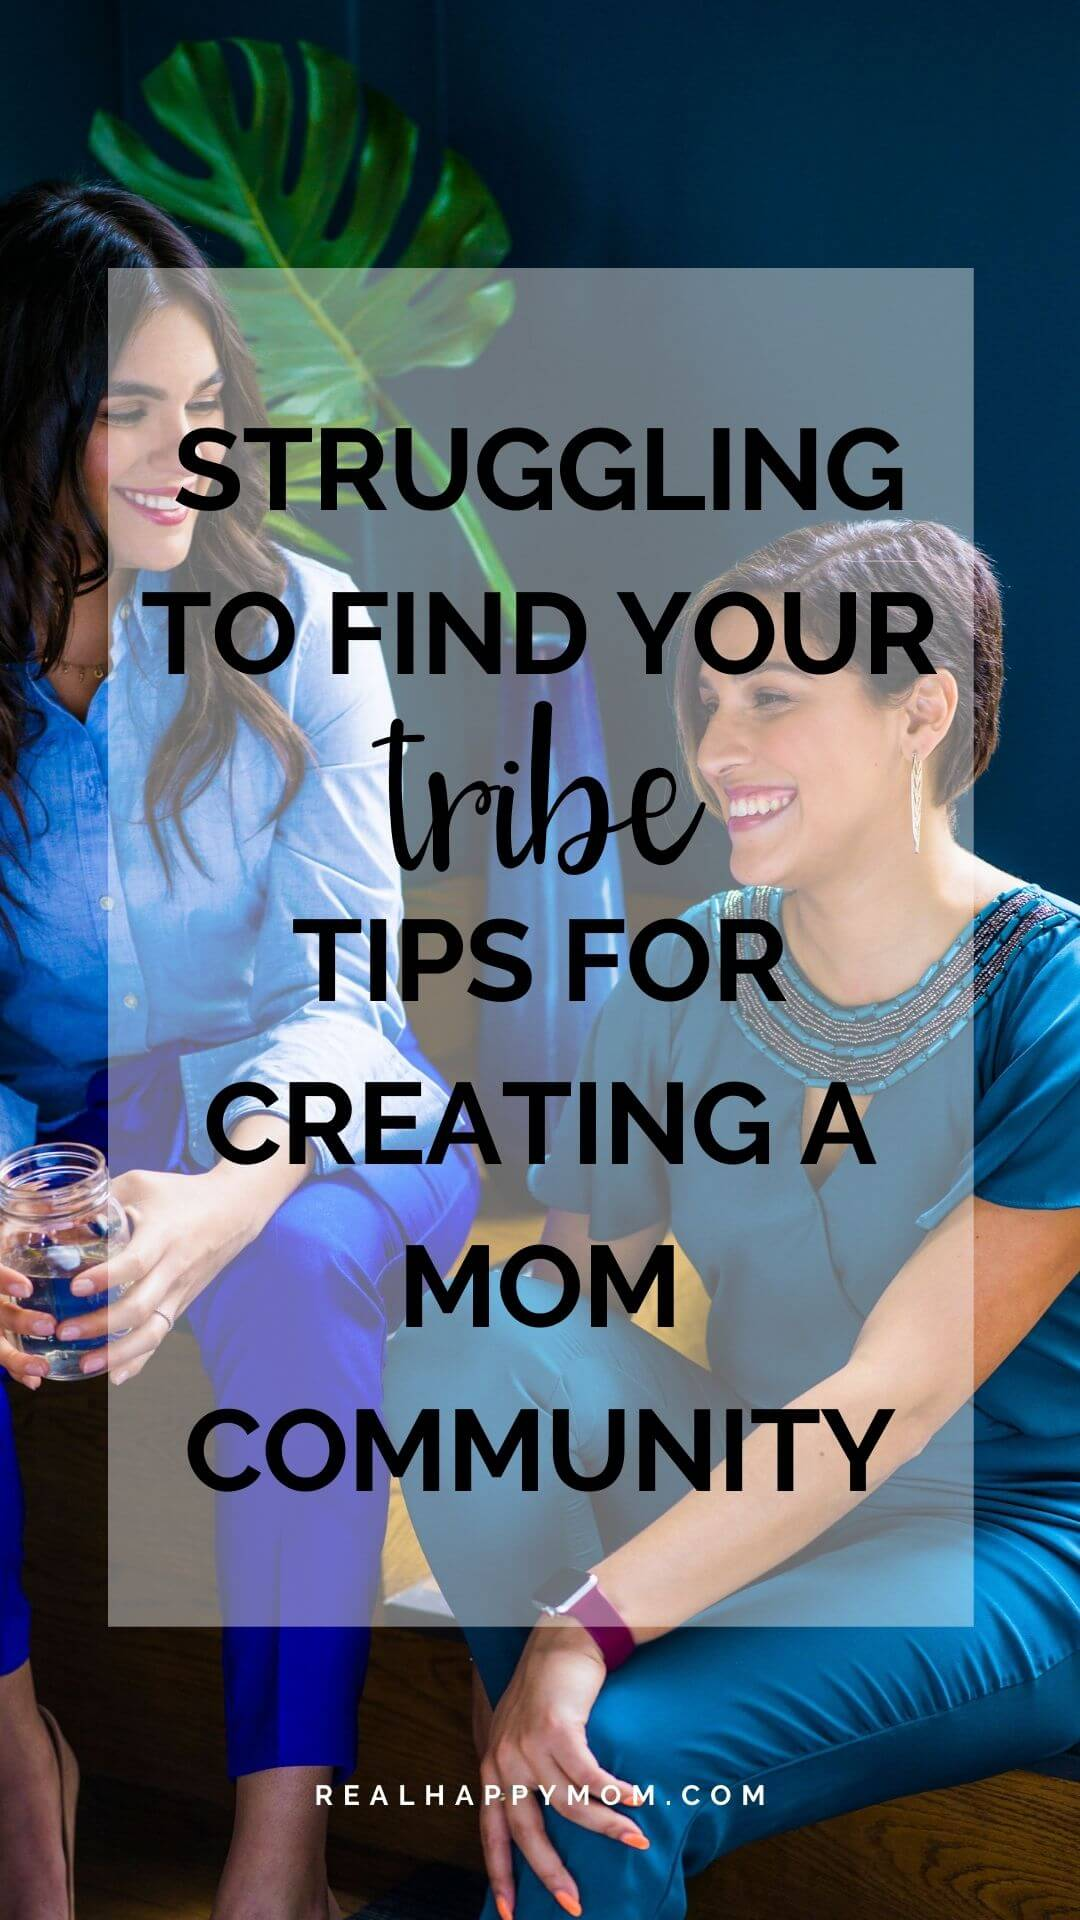 Struggling to Find Your Tribe? Tips for Creating a Mom Community